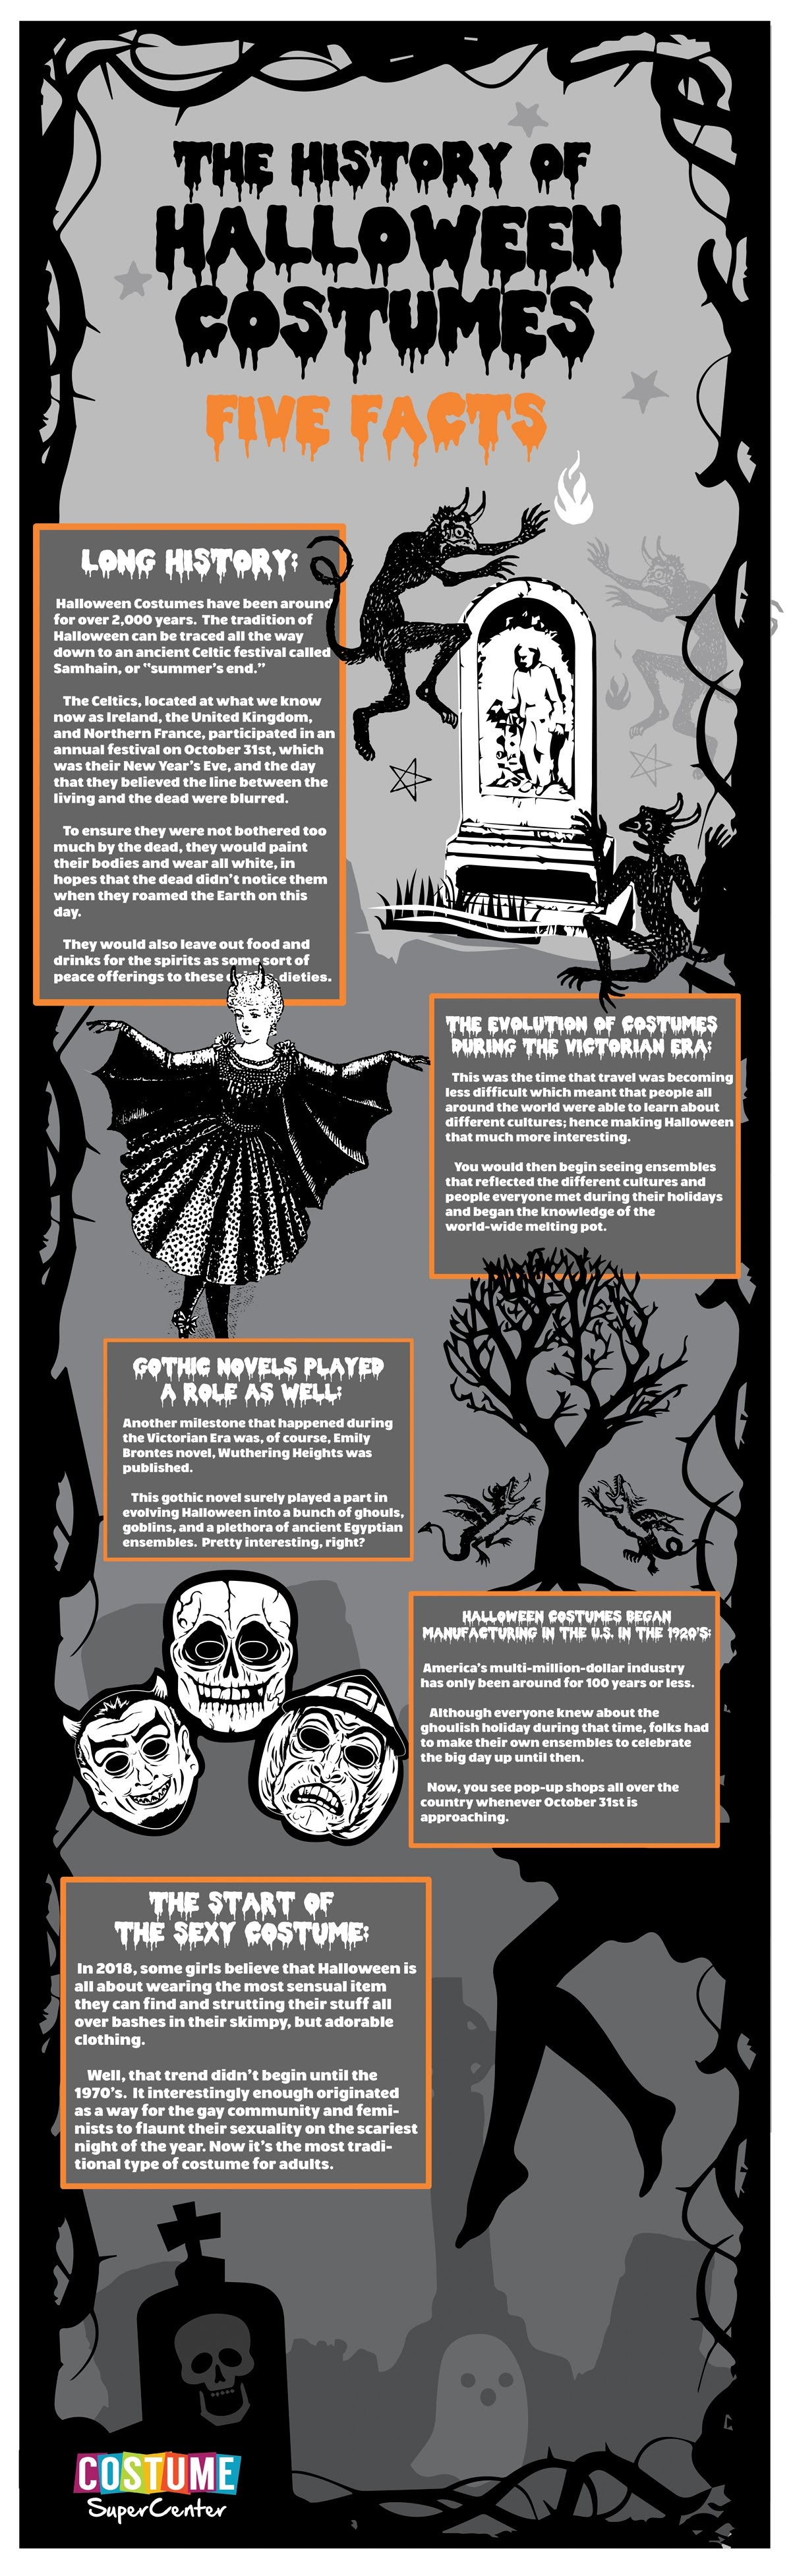 The History of Halloween Costumes #infographic